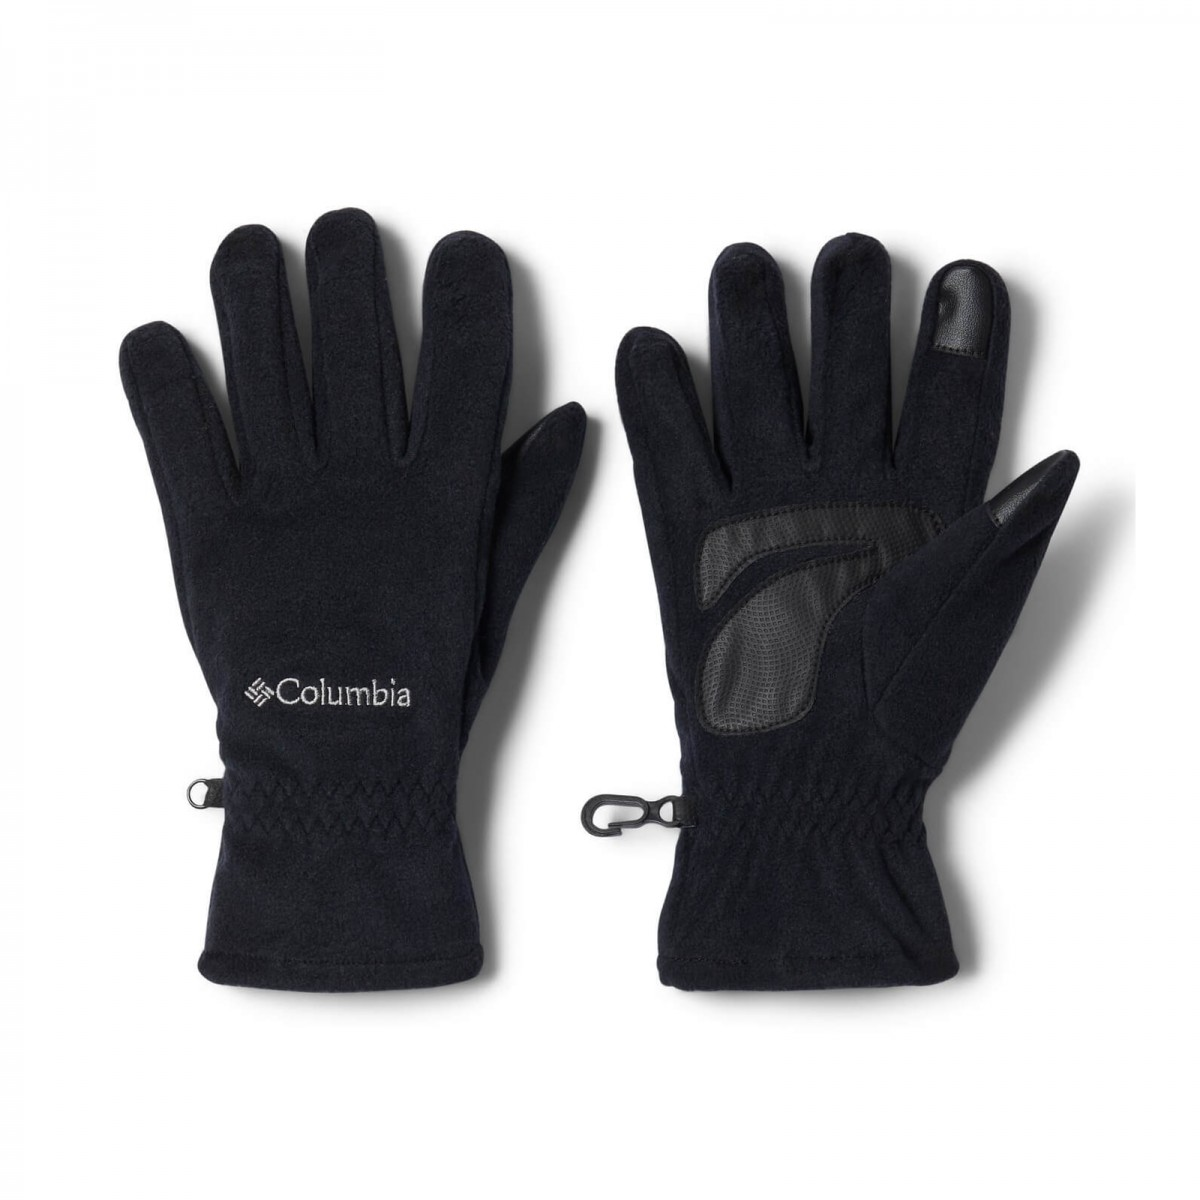 Mai multe damă Outdoor Columbia W Thermarator Glove Negre -1